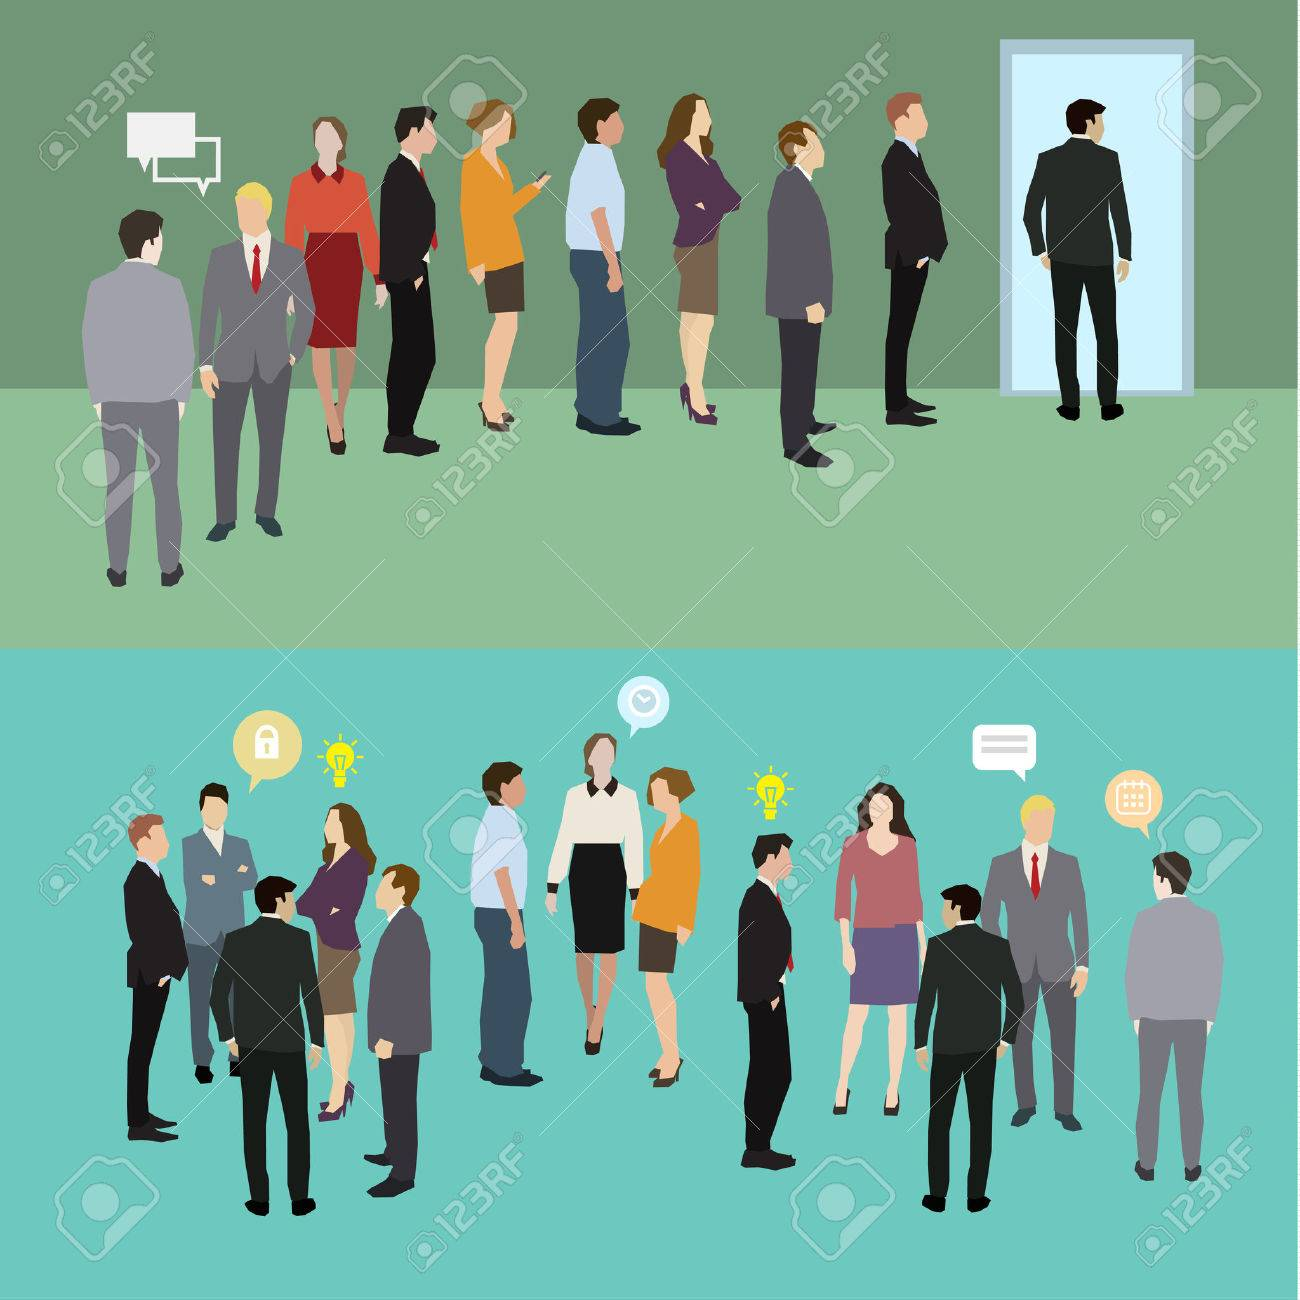 Business people standing in a line. Flat design, vector illustration - 51445208